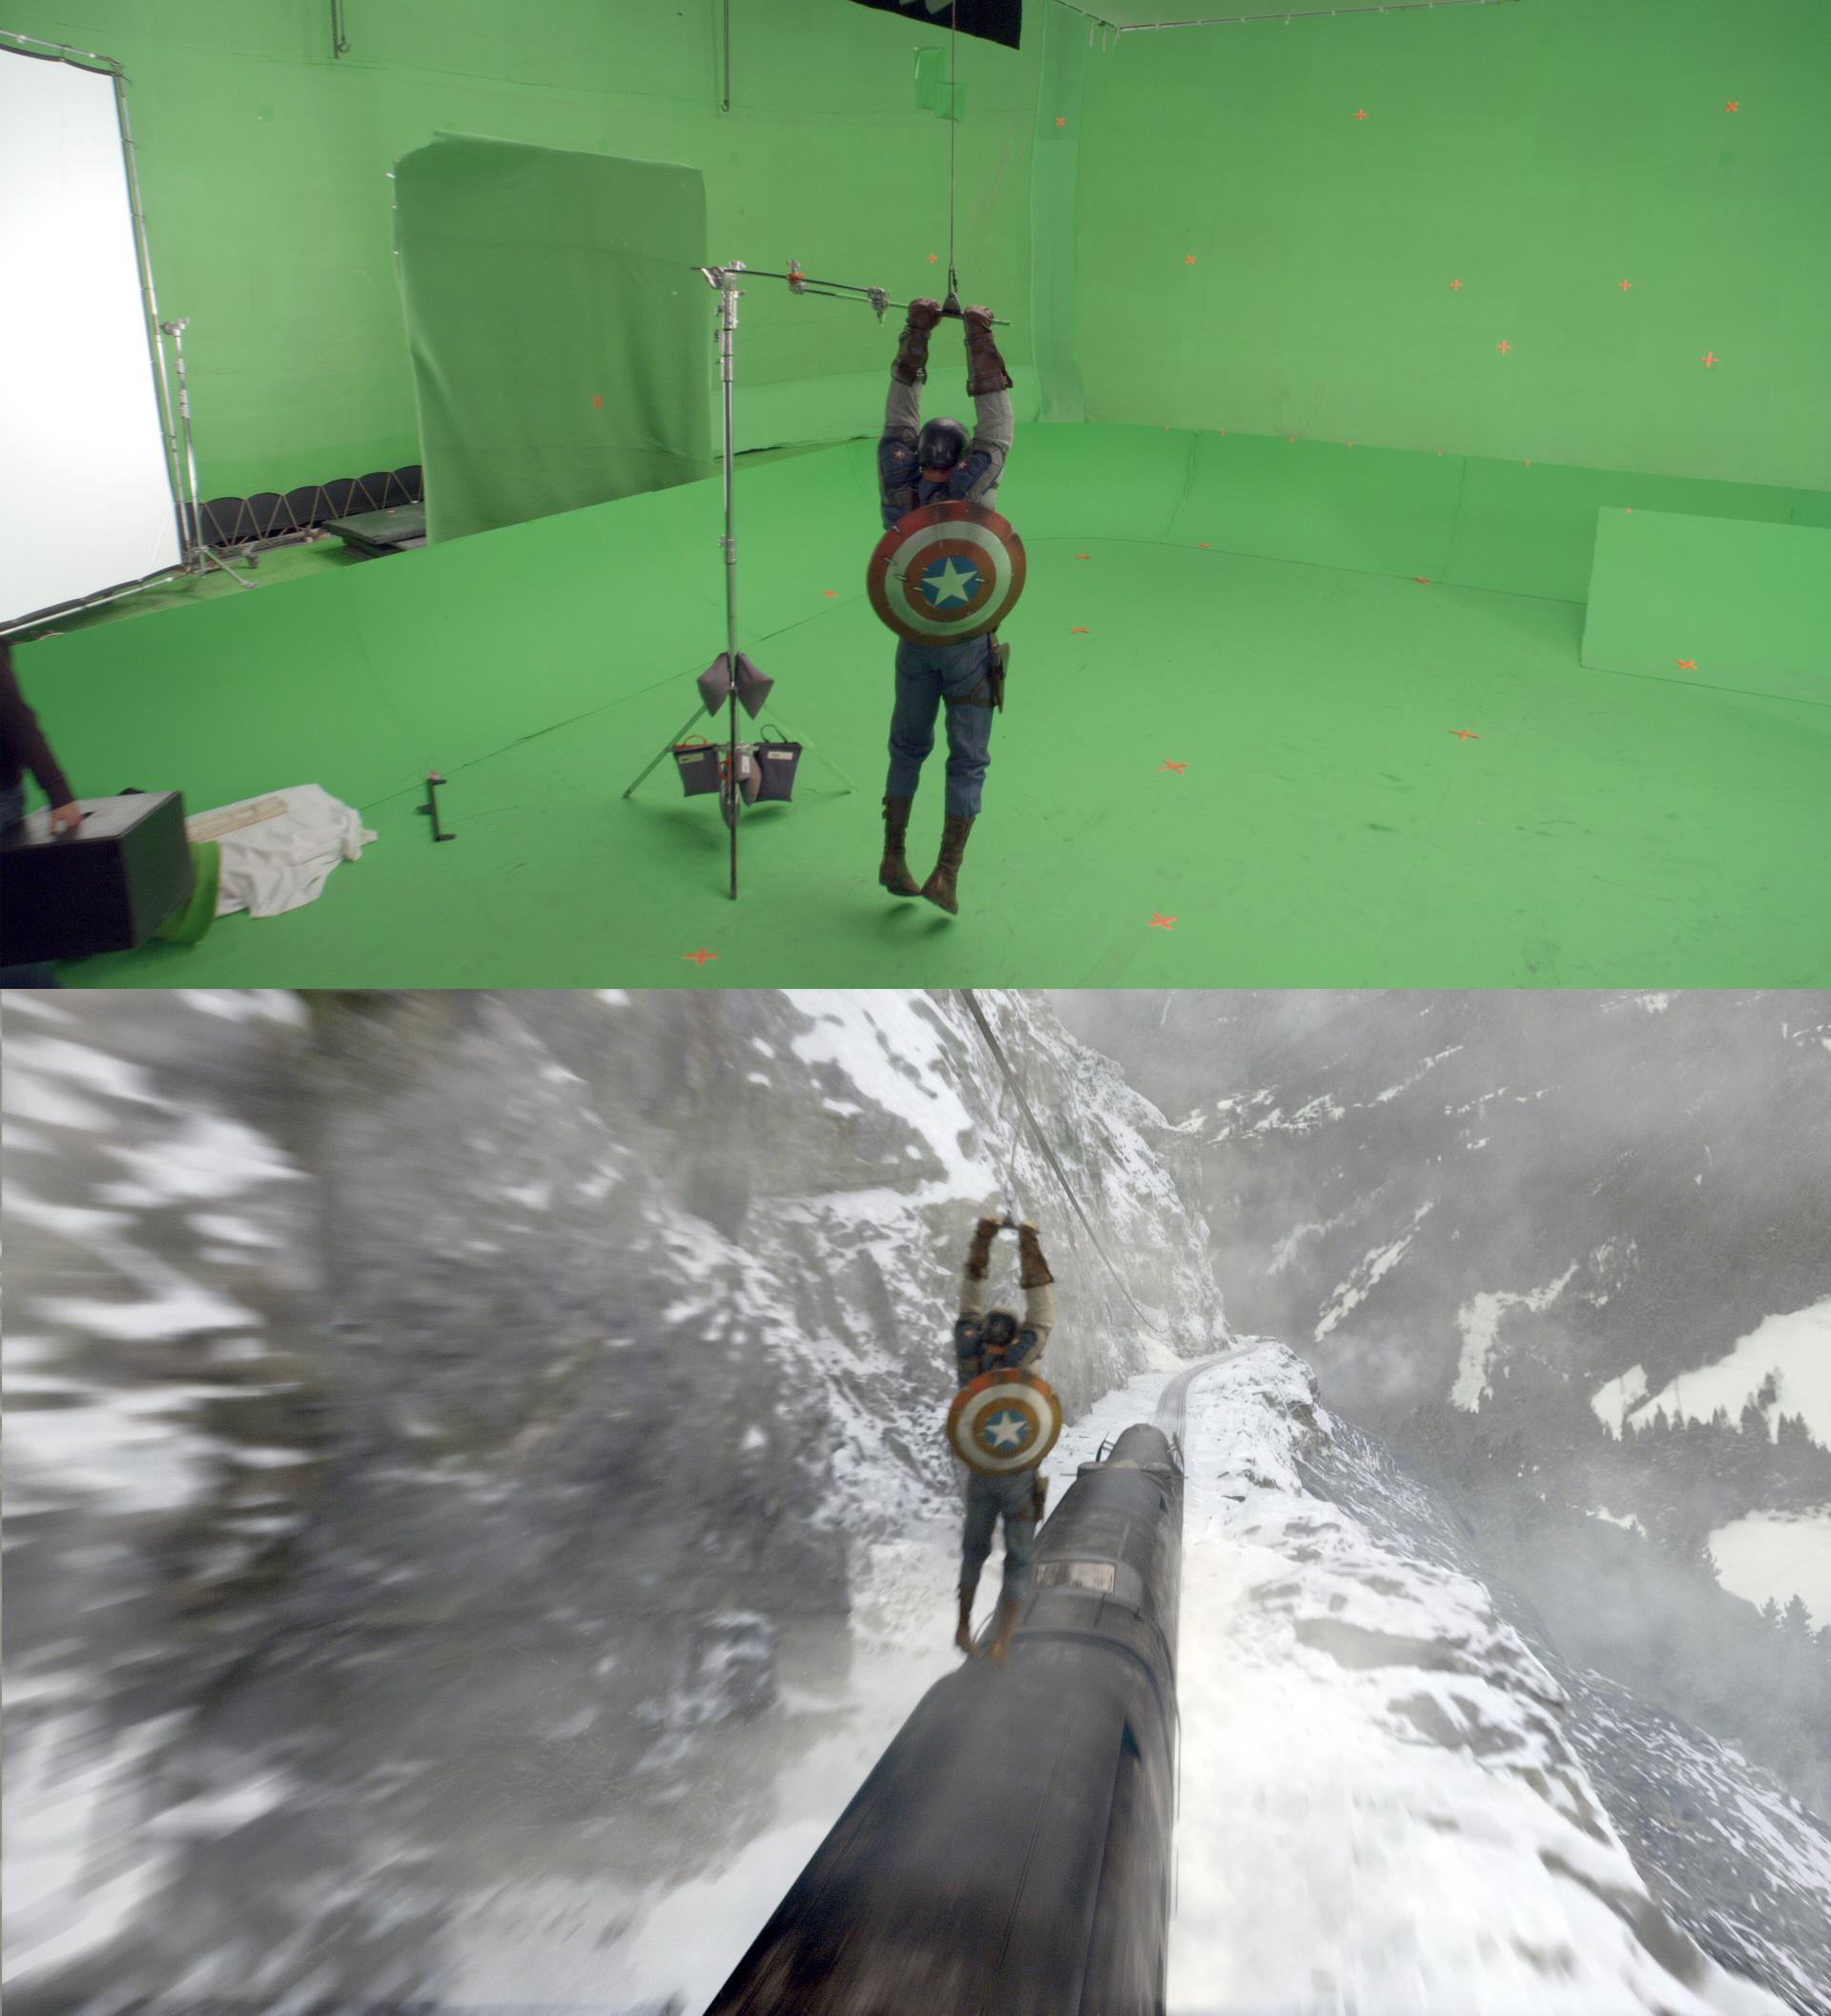 20 Before and After Comparisons of Movie Visual Effects 35